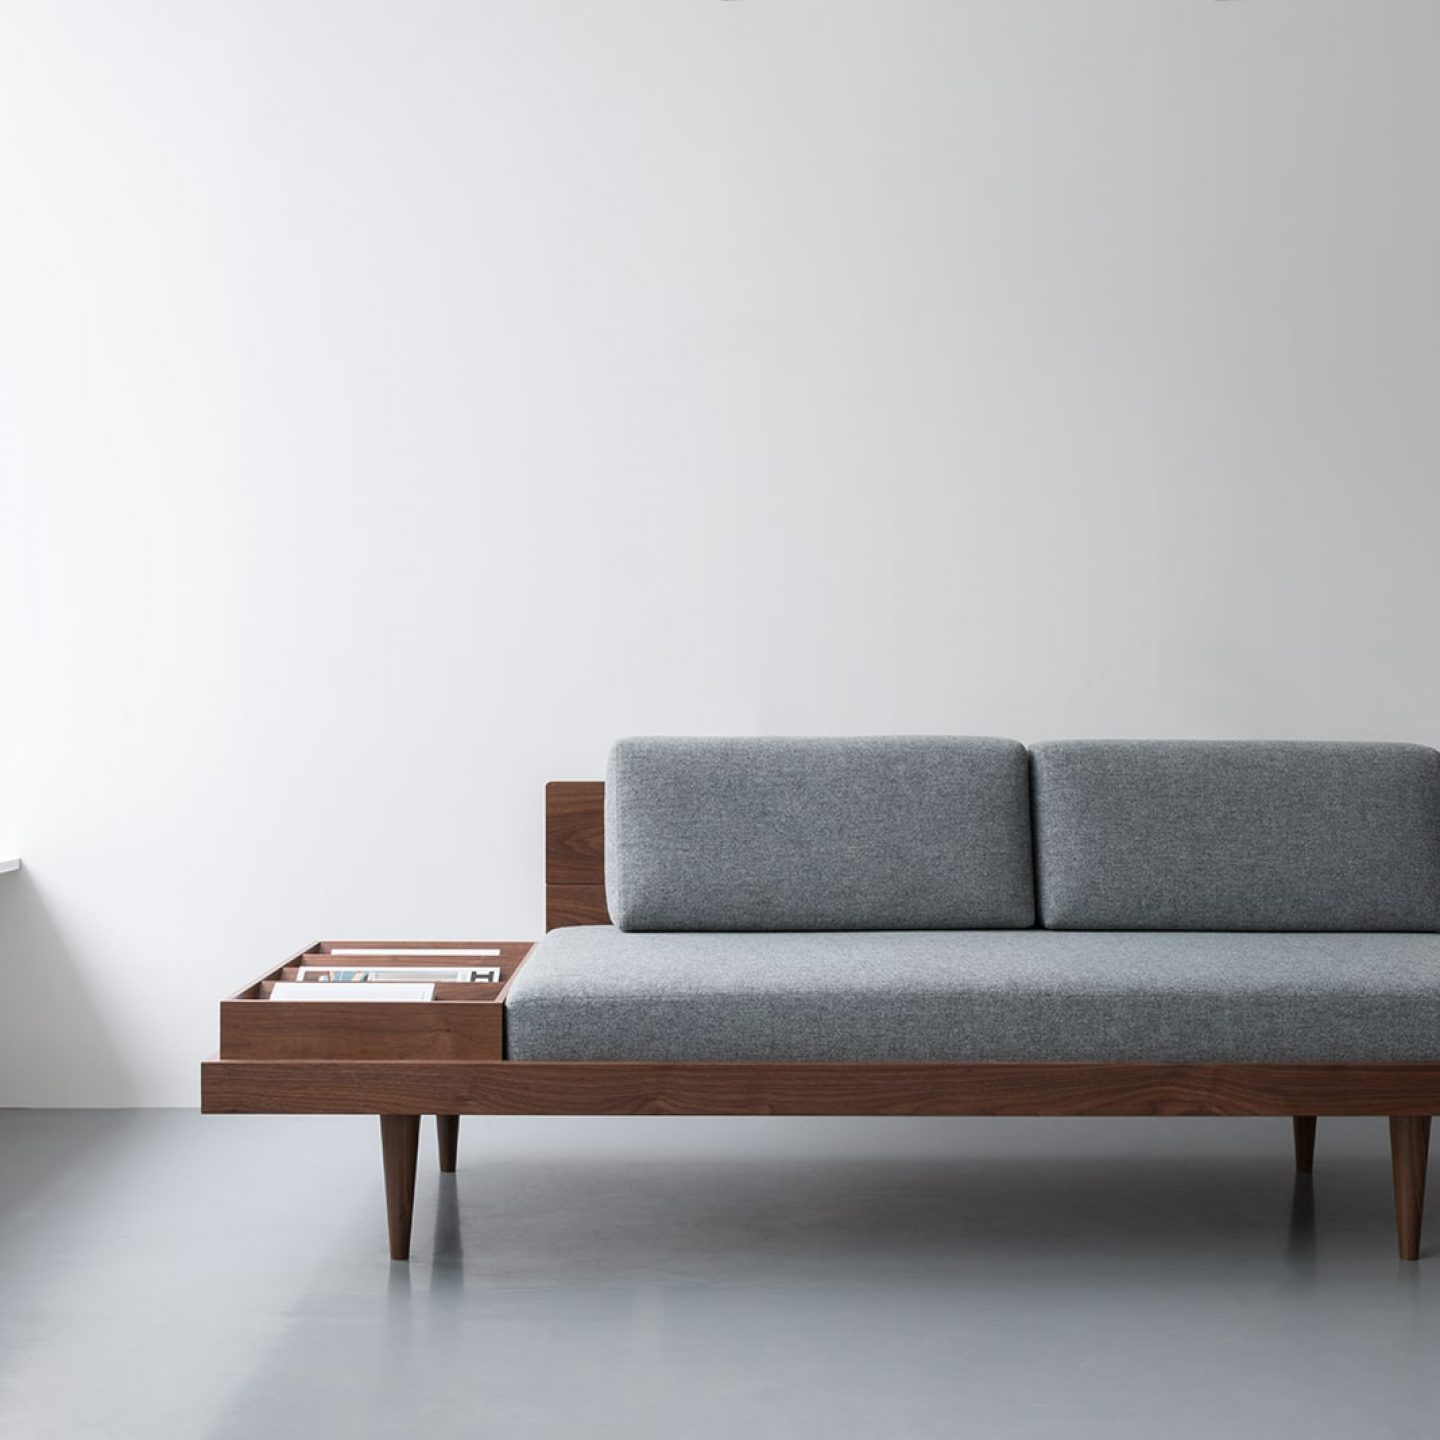 Minimalist Mid Century Modern Furniture By Glasgow Based Studio Instrmnt Applied Design Ignant